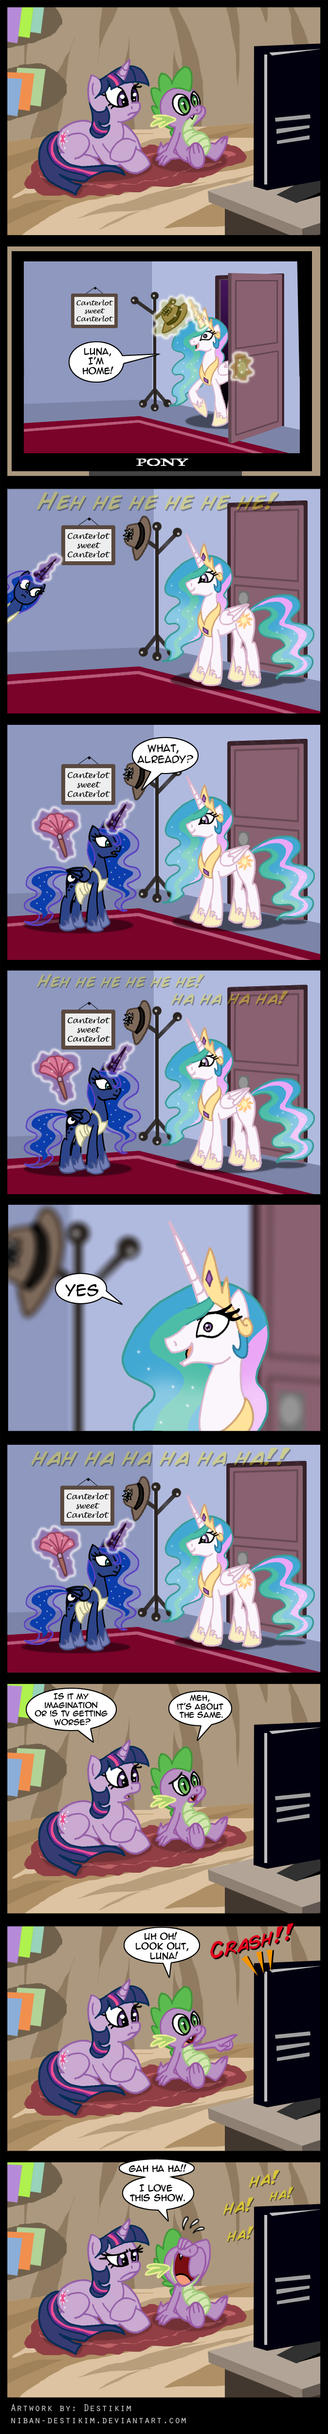 The Celestia and Luna show! by Niban-Destikim